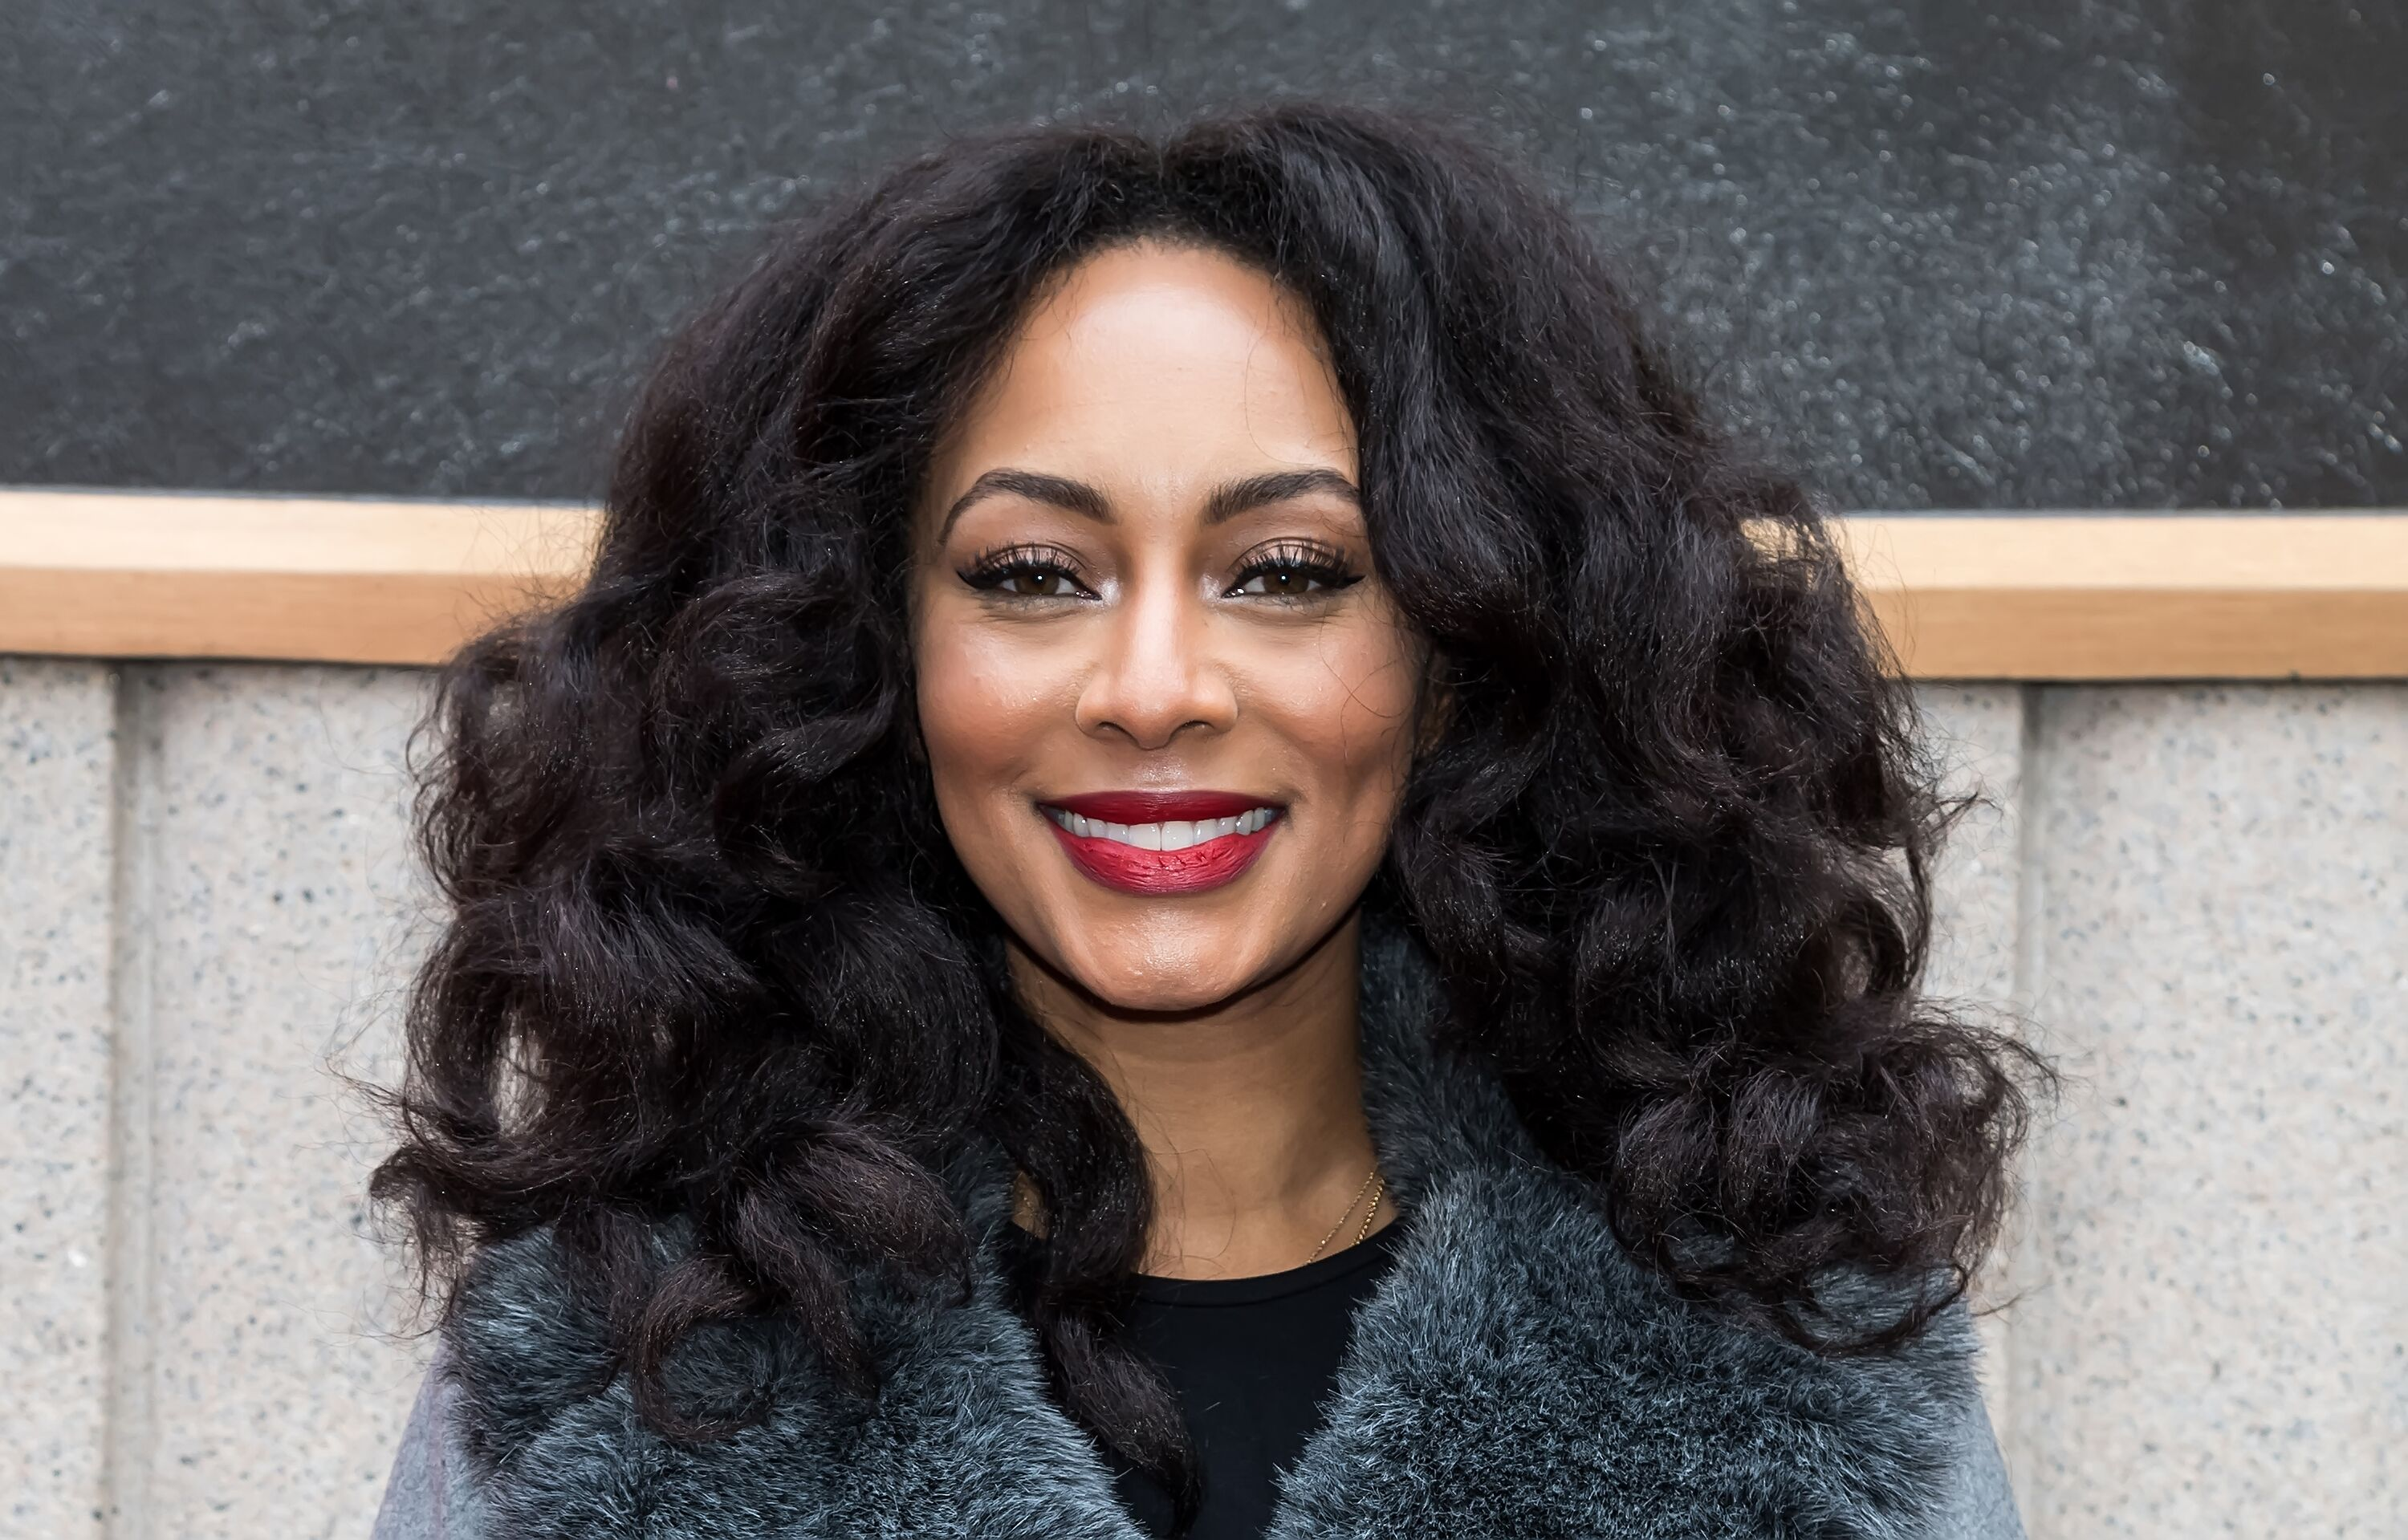 Keri Hilson at Macy's Center City on November 17, 2018. | Source: Getty Images